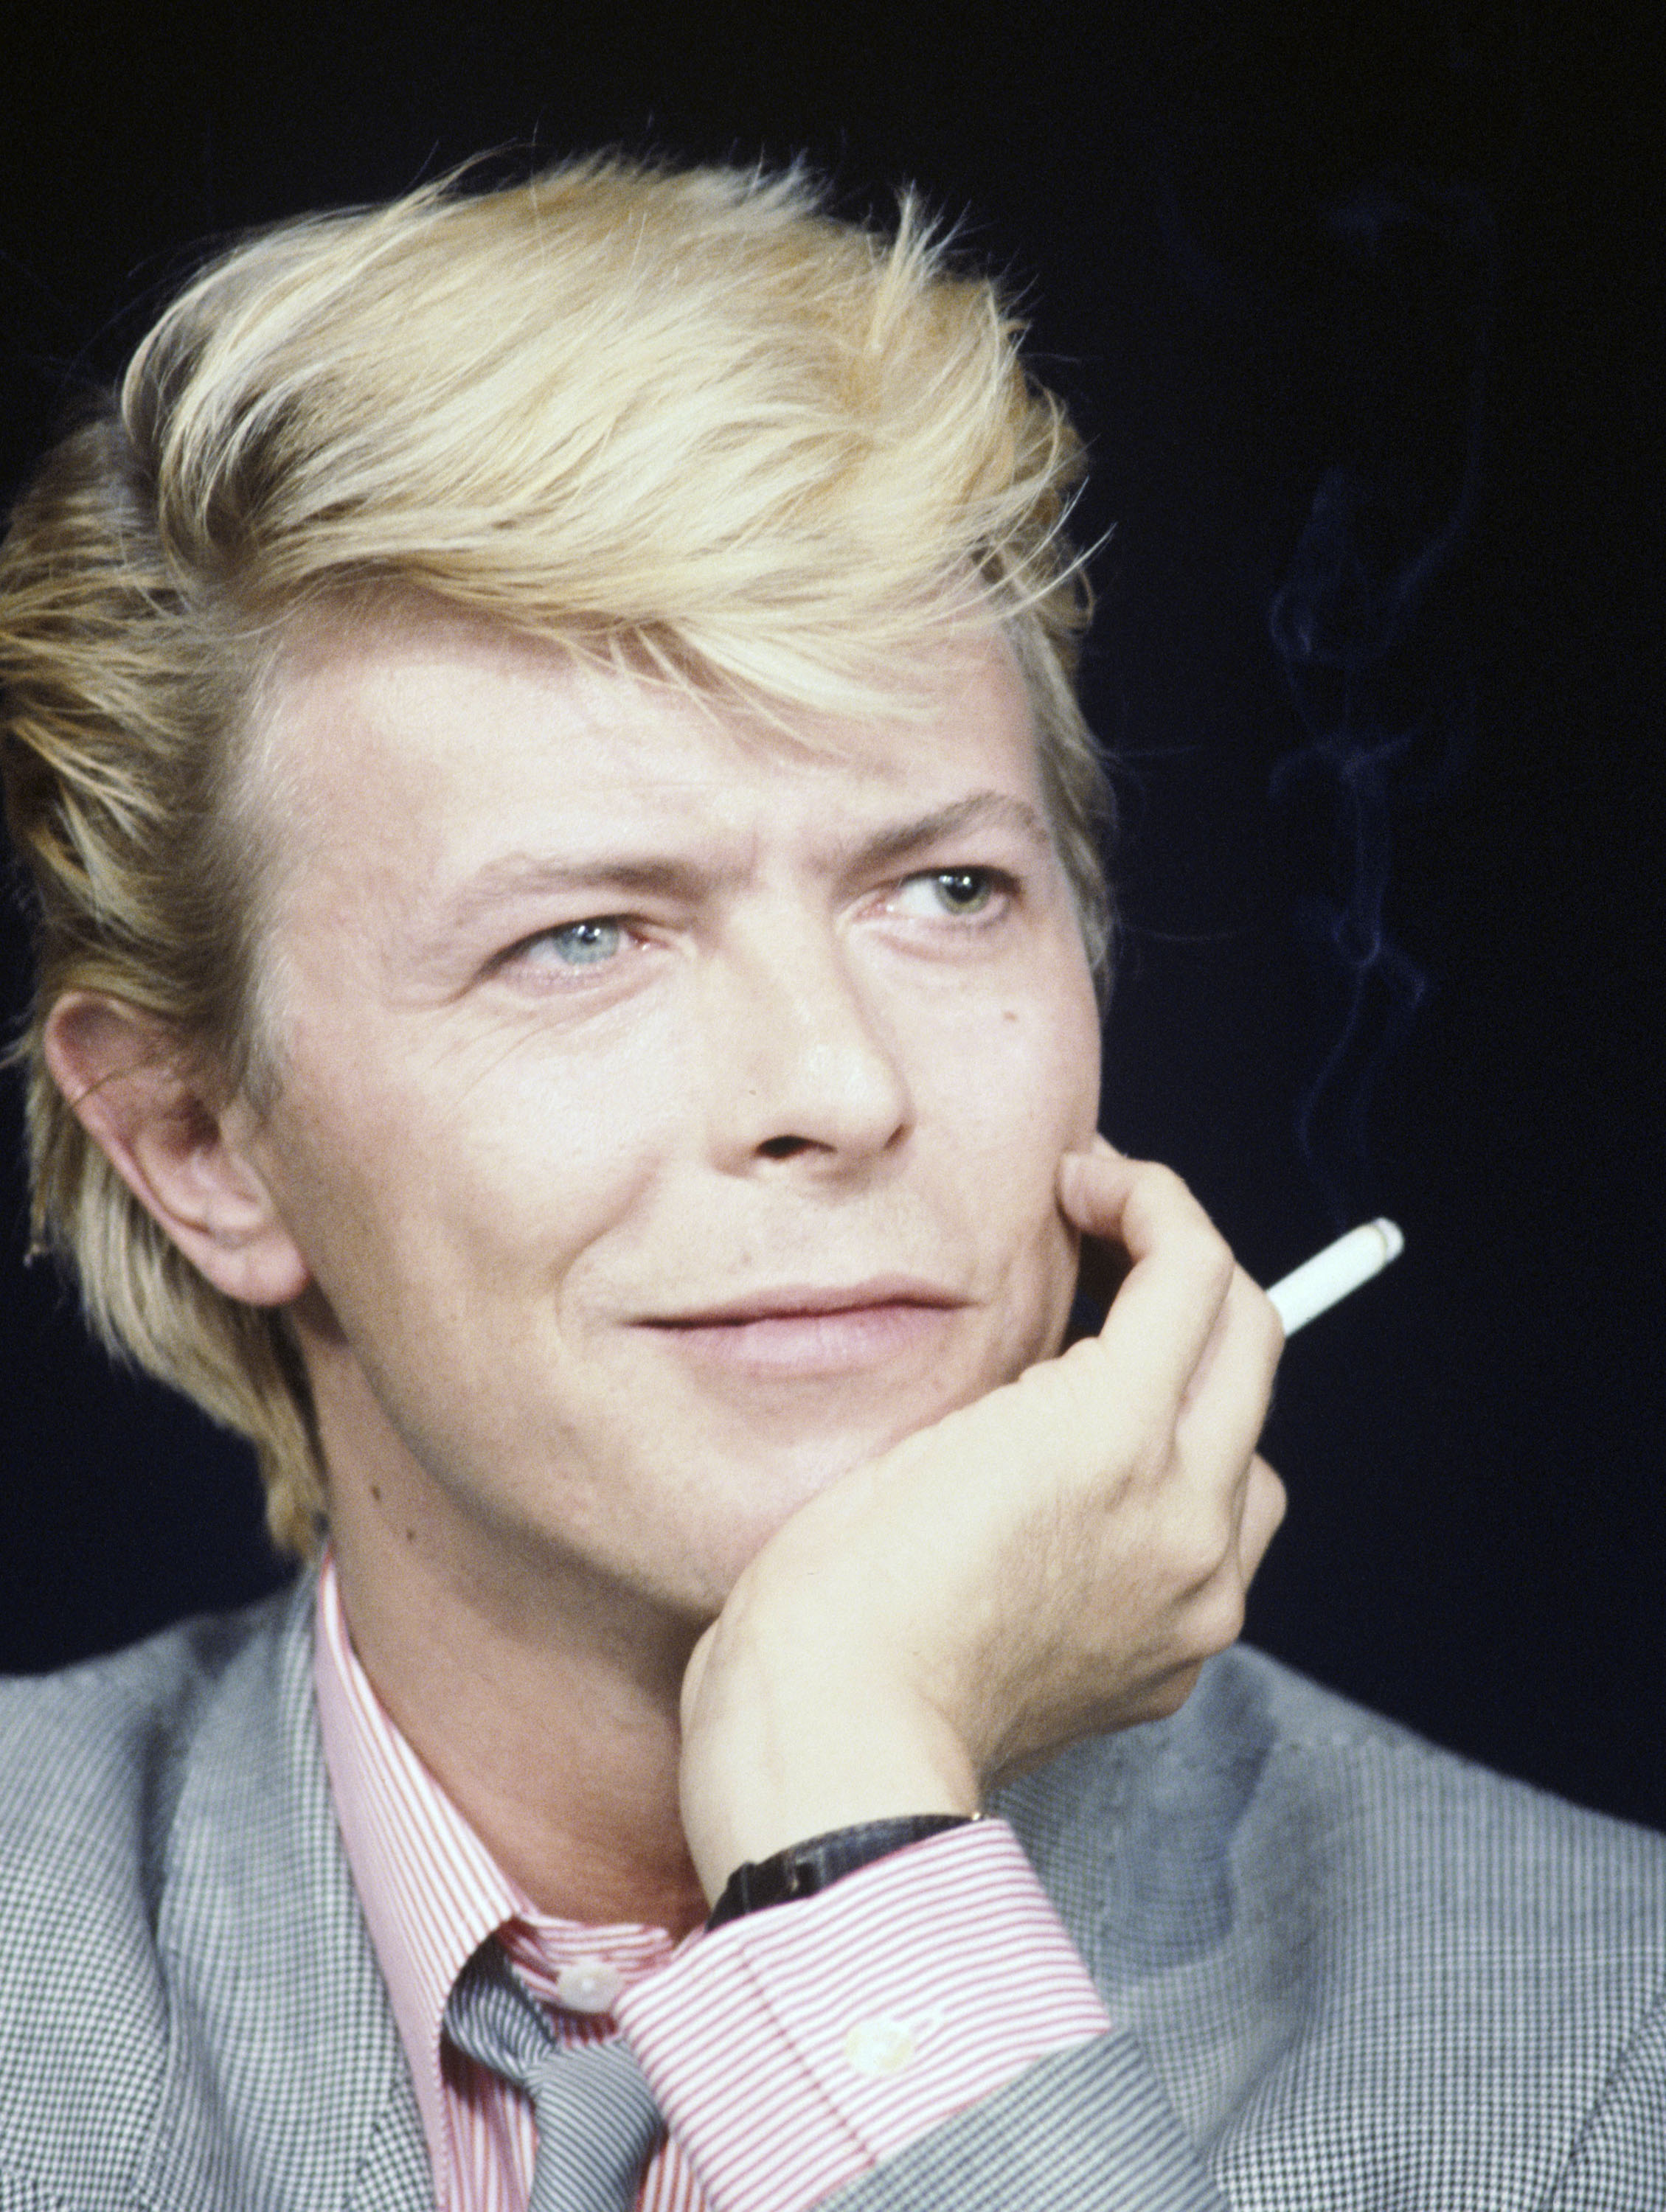 "51944267 Music legend David Bowie died after an 18 month battle with cancer on Sunday, January 10, 2016, just two days after his 69th birthday. ""Bowie was his generation's standard-bearer for rock as theater: something constructed and inflated yet sincere in its artifice, saying more than naturalism could. With a voice that dipped down to baritone and leapt into falsetto, he was complexly androgynous, an explorer of human impulses that could not be quantified."" (New York Times) File photos show Bowie throughout the years... Music legend David Bowie died after an 18 month battle with cancer on Sunday, January 10, 2016, just two days after his 69th birthday. ""Bowie was his generation's standard-bearer for rock as theater: something constructed and inflated yet sincere in its artifice, saying more than naturalism could. With a voice that dipped down to baritone and leapt into falsetto, he was complexly androgynous, an explorer of human impulses that could not be quantified."" (New York Times) File photos show Bowie throughout the years... Year: 1983 FameFlynet, Inc - Beverly Hills, CA, USA - +1 (310) 505-9876 RESTRICTIONS APPLY: USA ONLY"